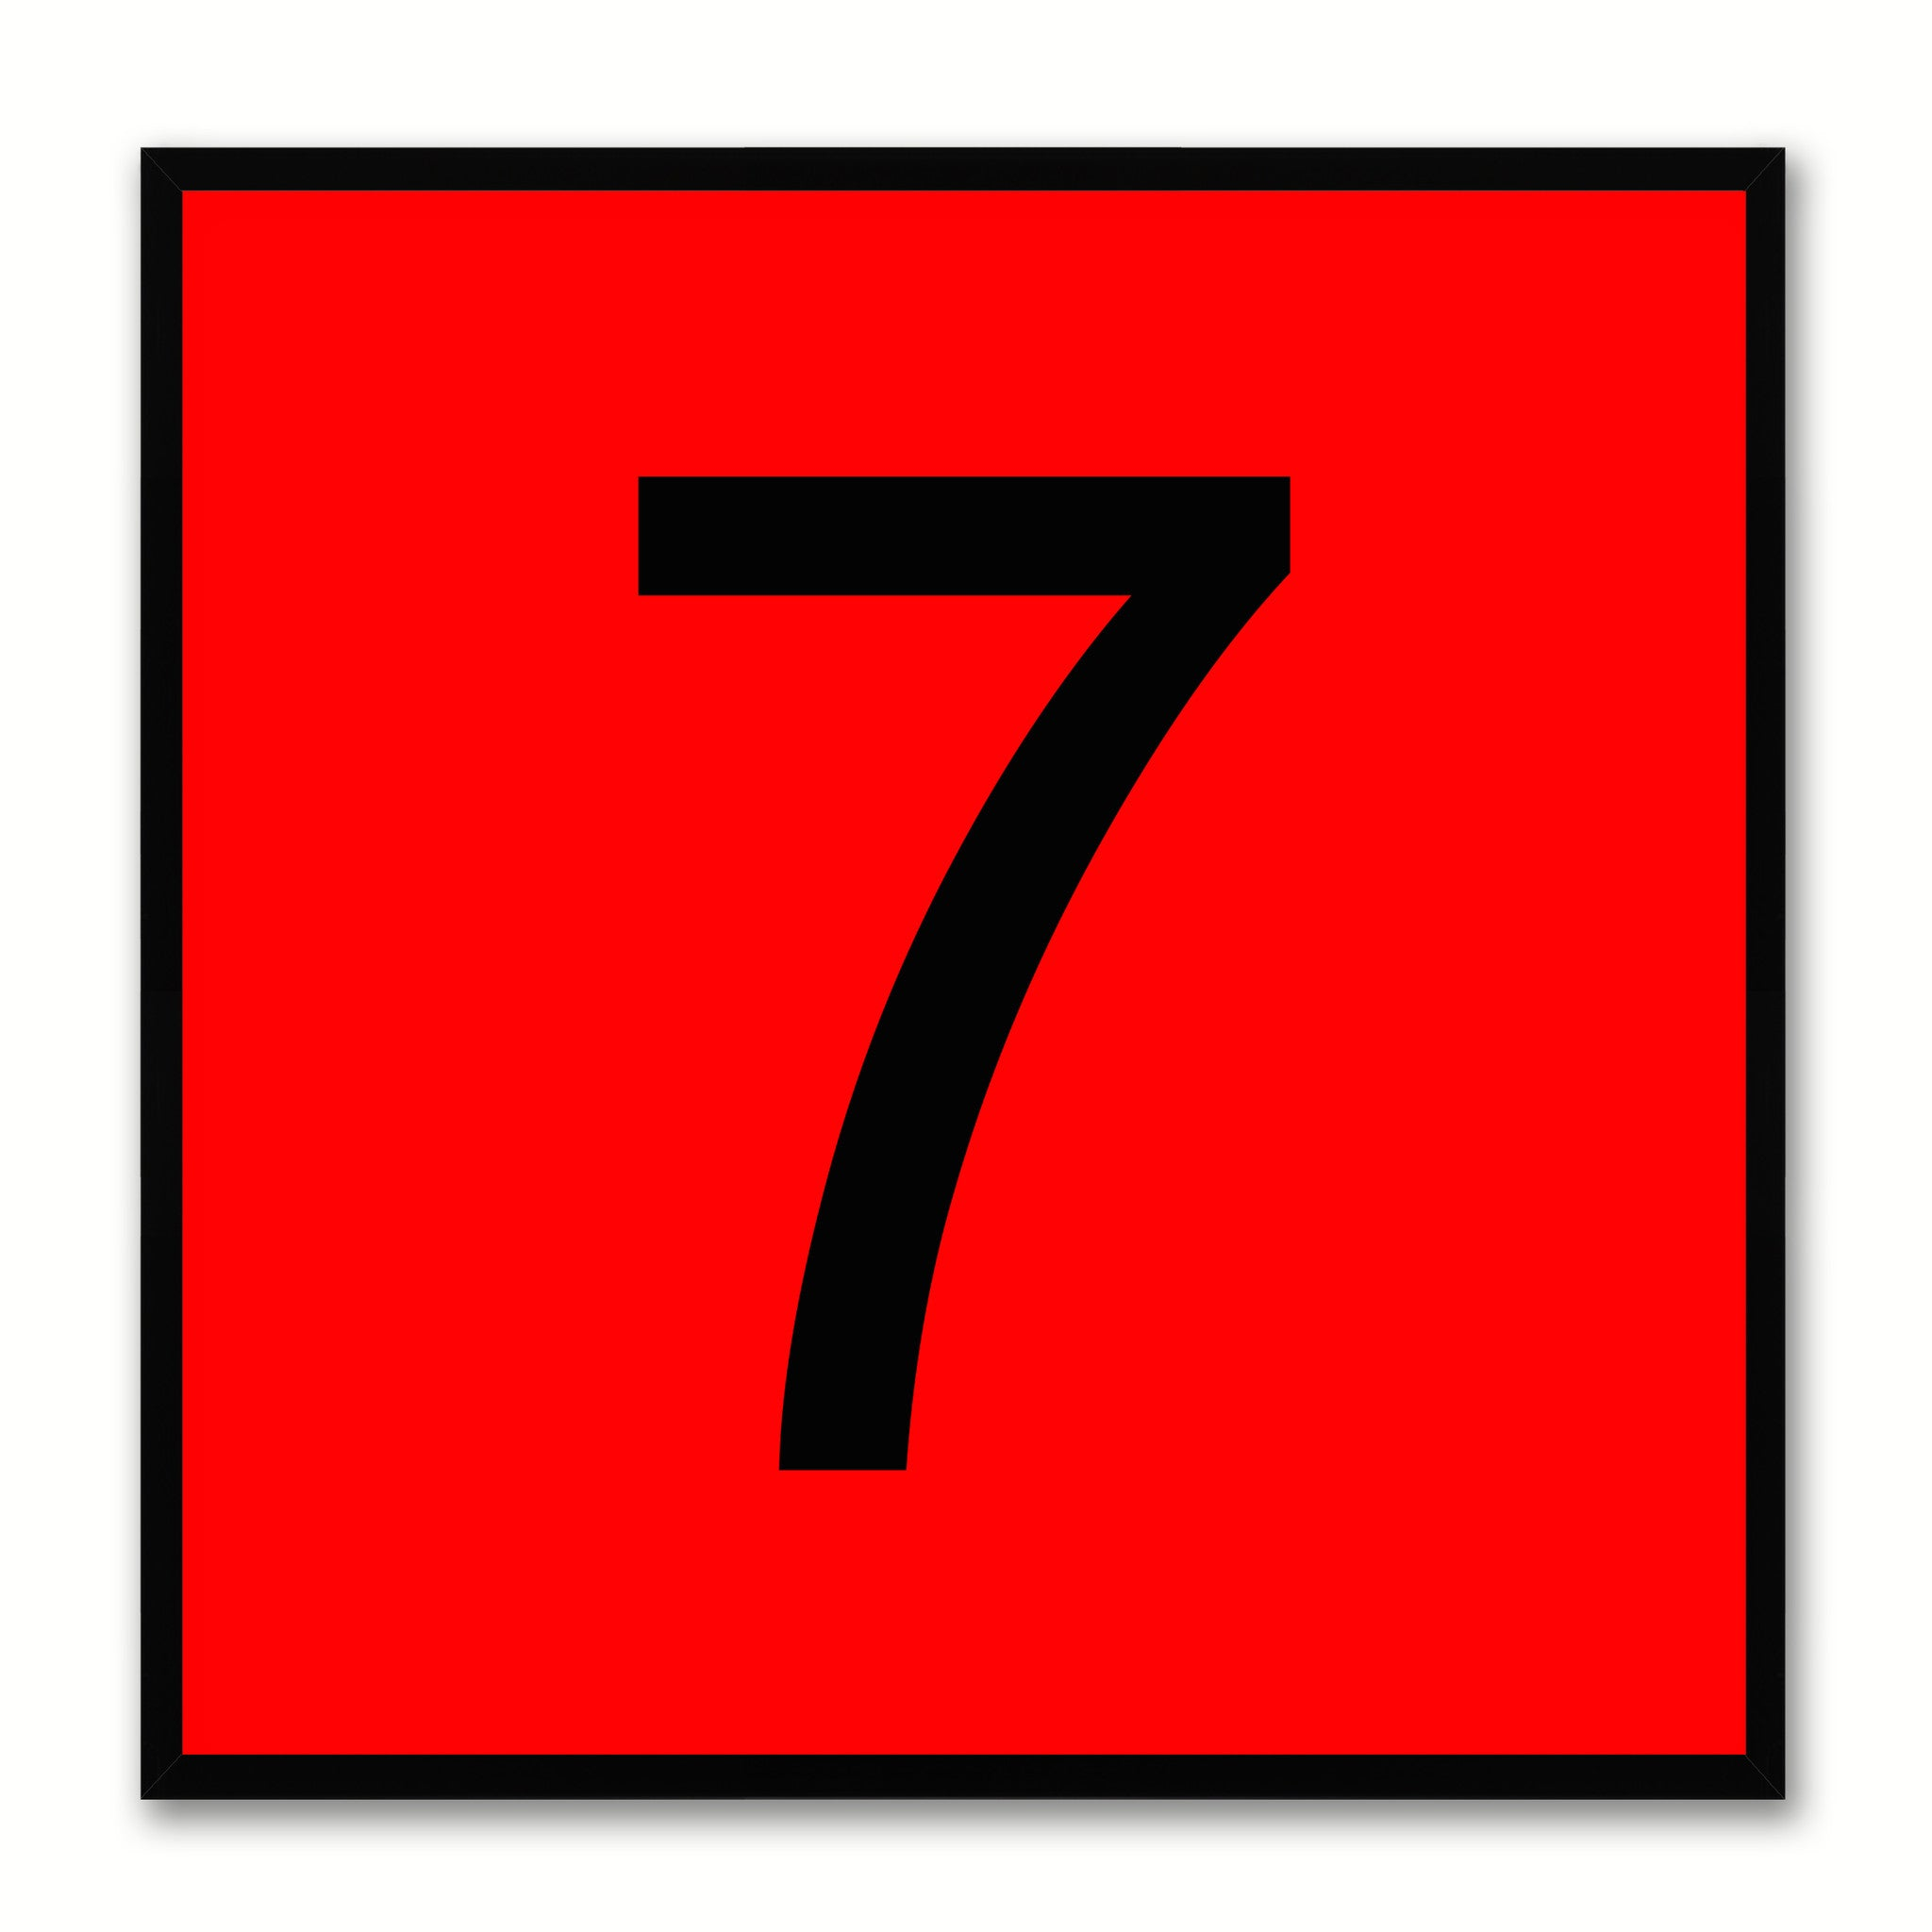 Number 7 Red Canvas Print Black Frame Kids Bedroom Wall Décor Home Art